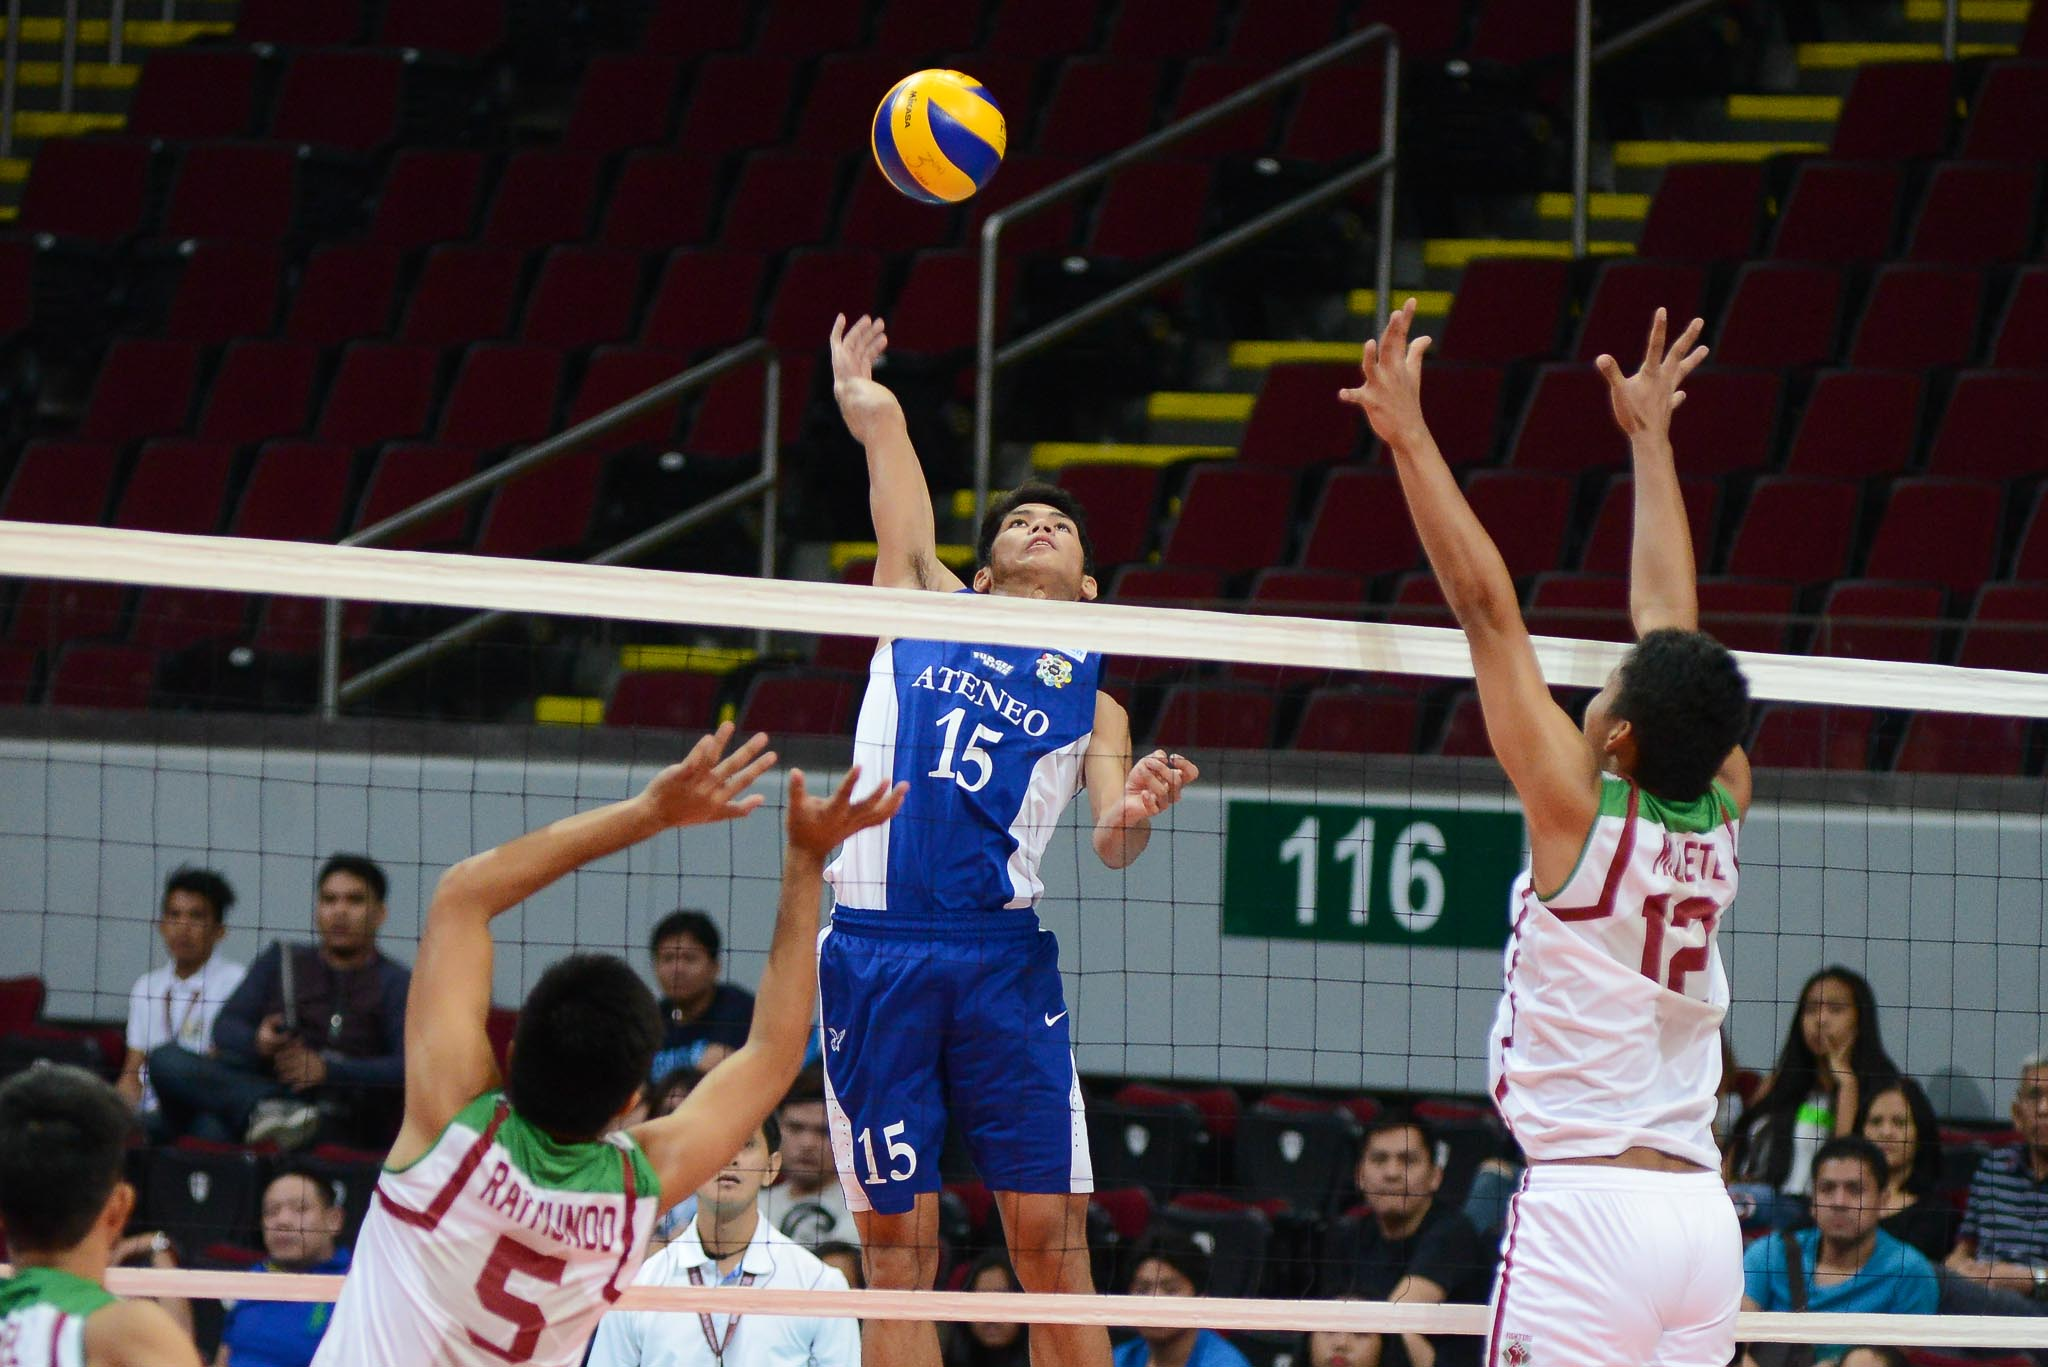 Philippine Sports News - Tiebreaker Times Ateneo ends UP's streak, breezes to fourth win ADMU News UAAP UP Volleyball  Ysay Marasigan Wendel Miguel UP Men's Volleyball Team UAAP Season 78 Men's Volleyball UAAP Season 78 Oliver Almadro Mark Millete Marck Espejo Josh Villanueva Ateneo Men's Volleyball Team